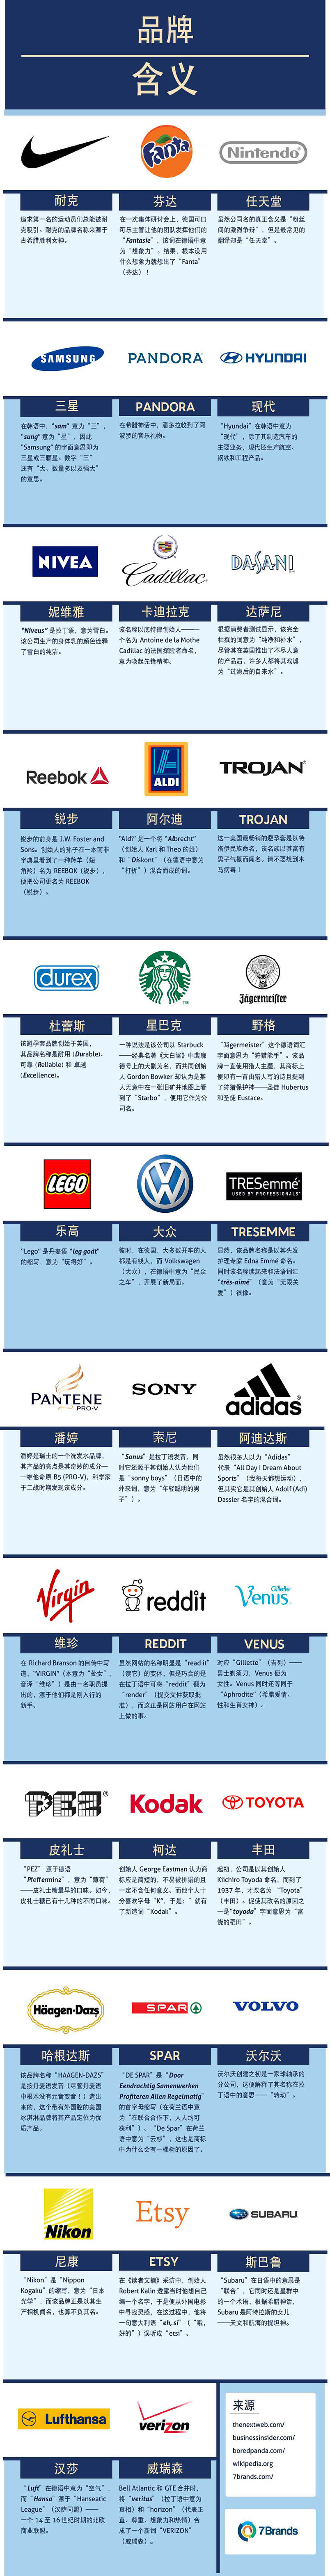 meaning of brand names_ZH